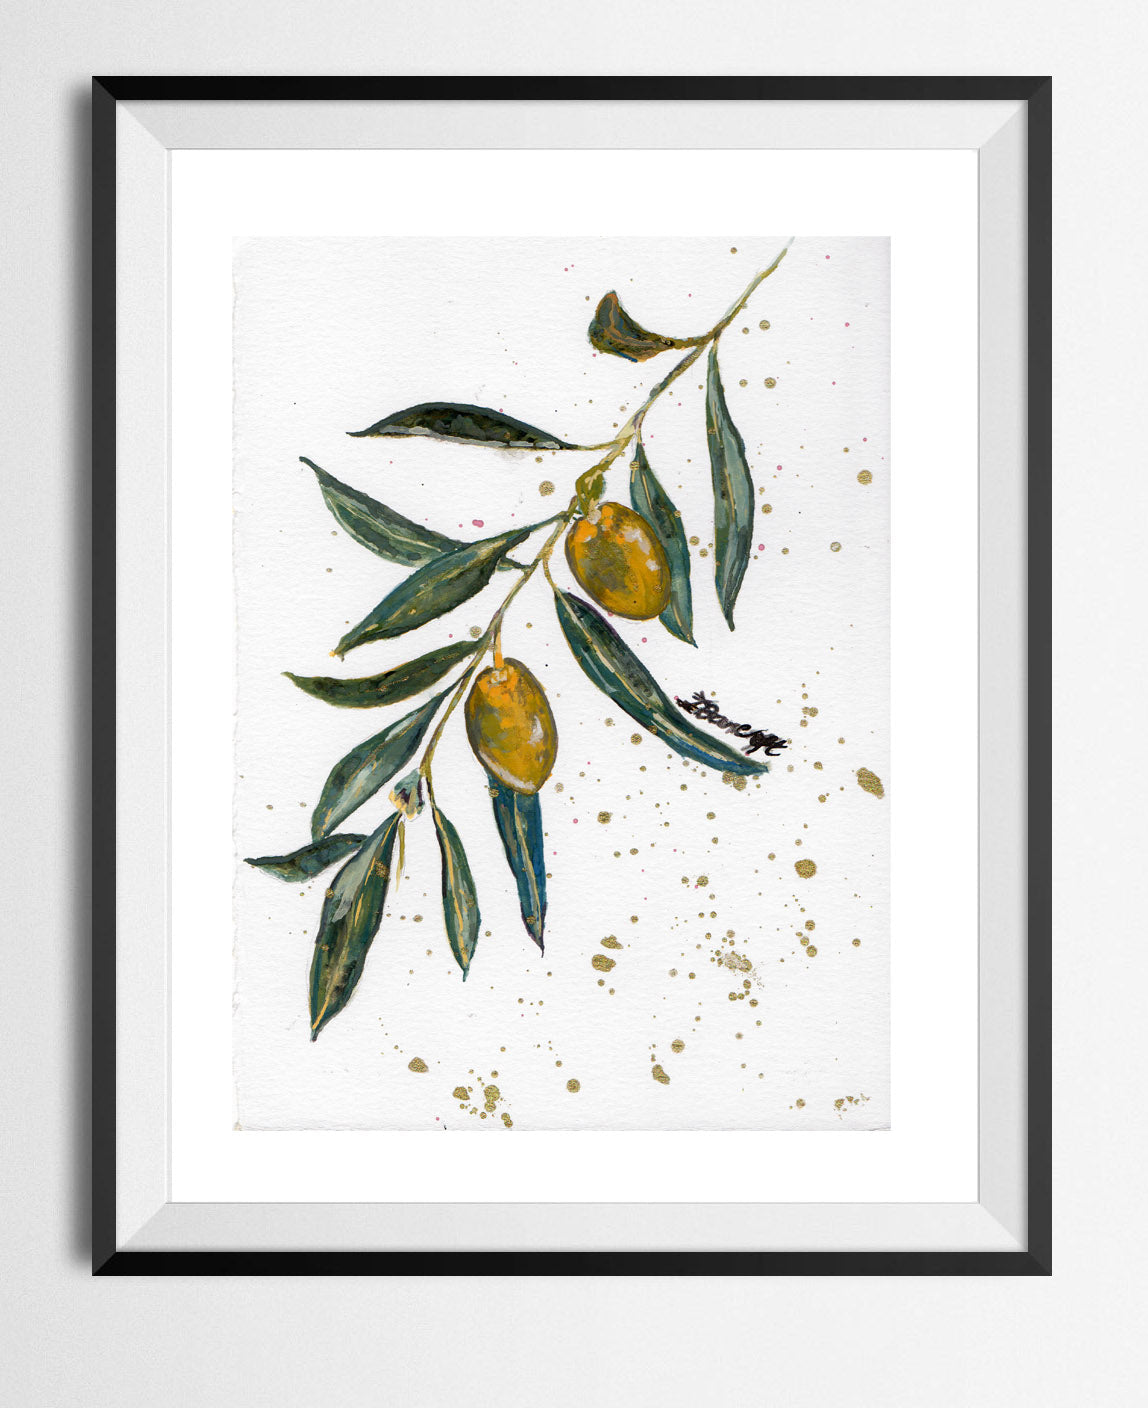 🌴 'OLEA EUROPAEA' OLIVE TREE BRANCH GOUACHE MINI 8 X 5 (A5) MINI PRINT LIMITED EDITION